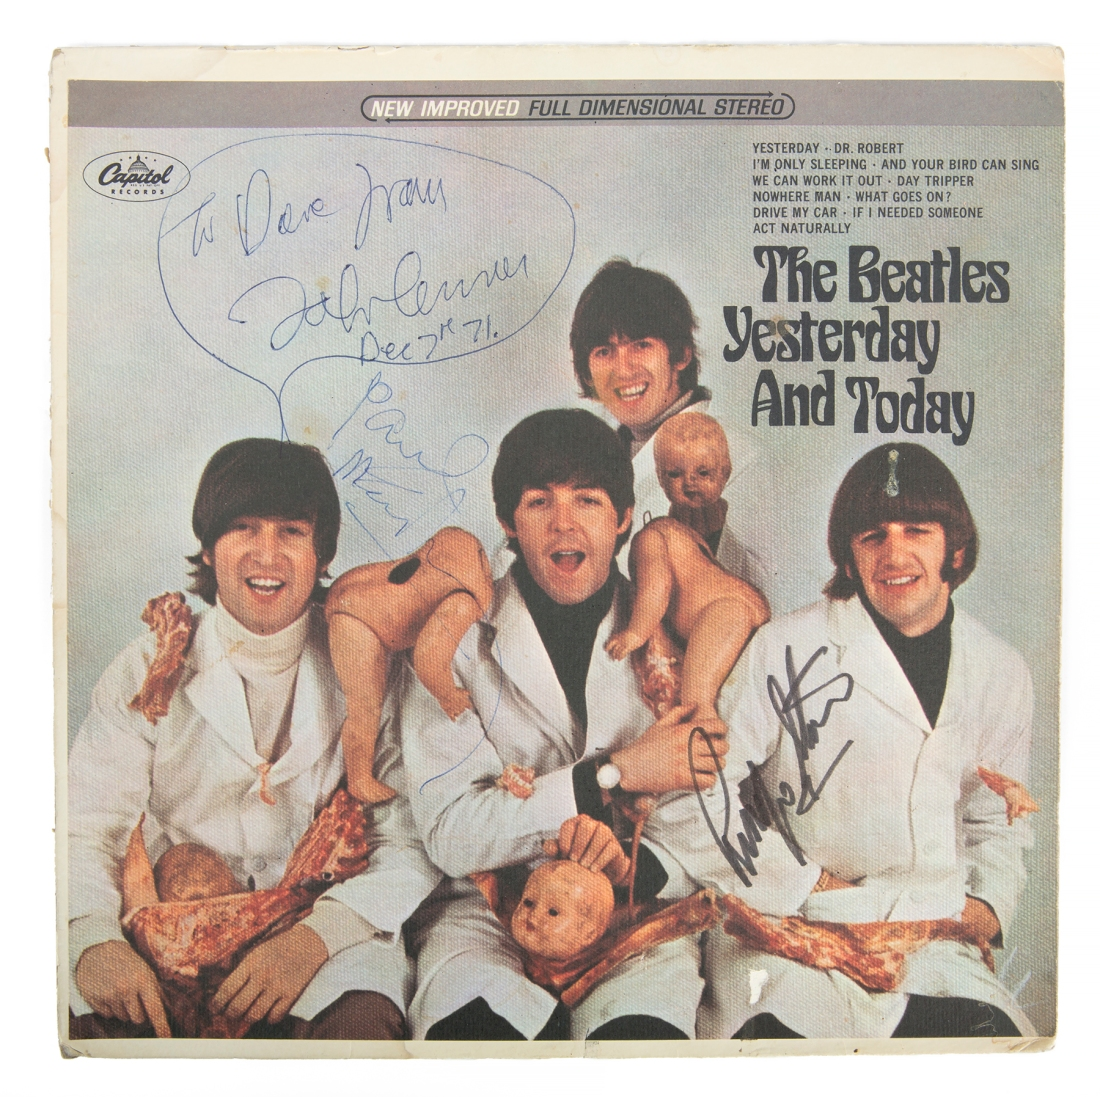 """John Lennon drew a speech bubble for the inscription on his copy of the infamous Beatles """"Butcher cover"""". The image shows McCartney, Lennon, Harrison, and Starr in white lab coats and draped with dismembered dolls and raw meat. McCartney signed it below Lennon's speech bubble. Starr signed the area over his right shoulder."""